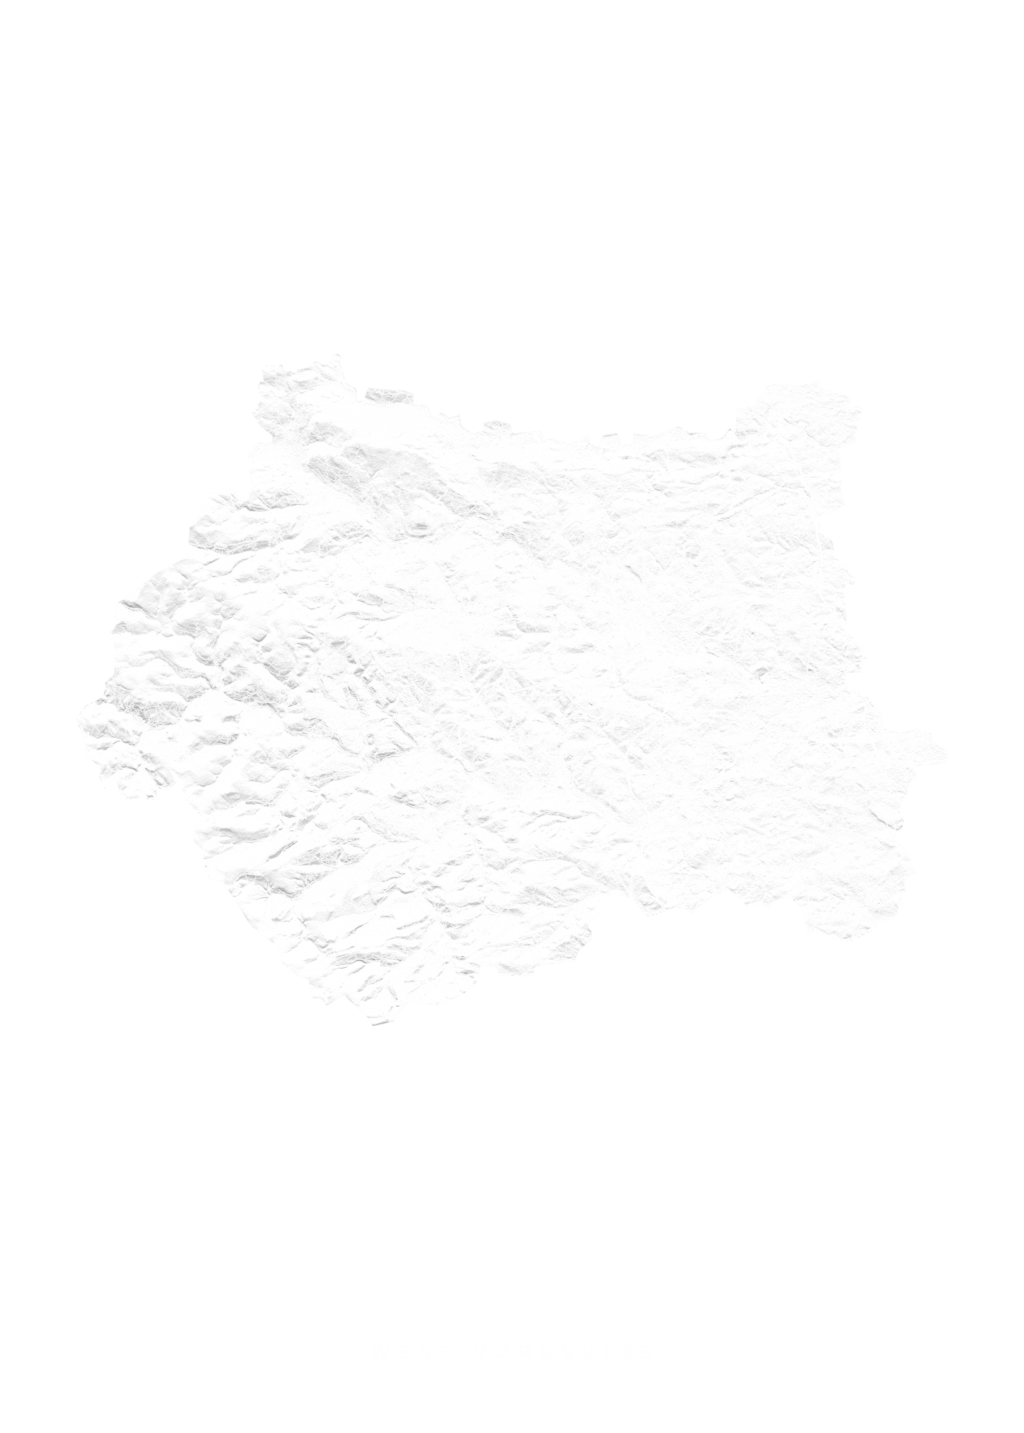 West Yorkshire wall map